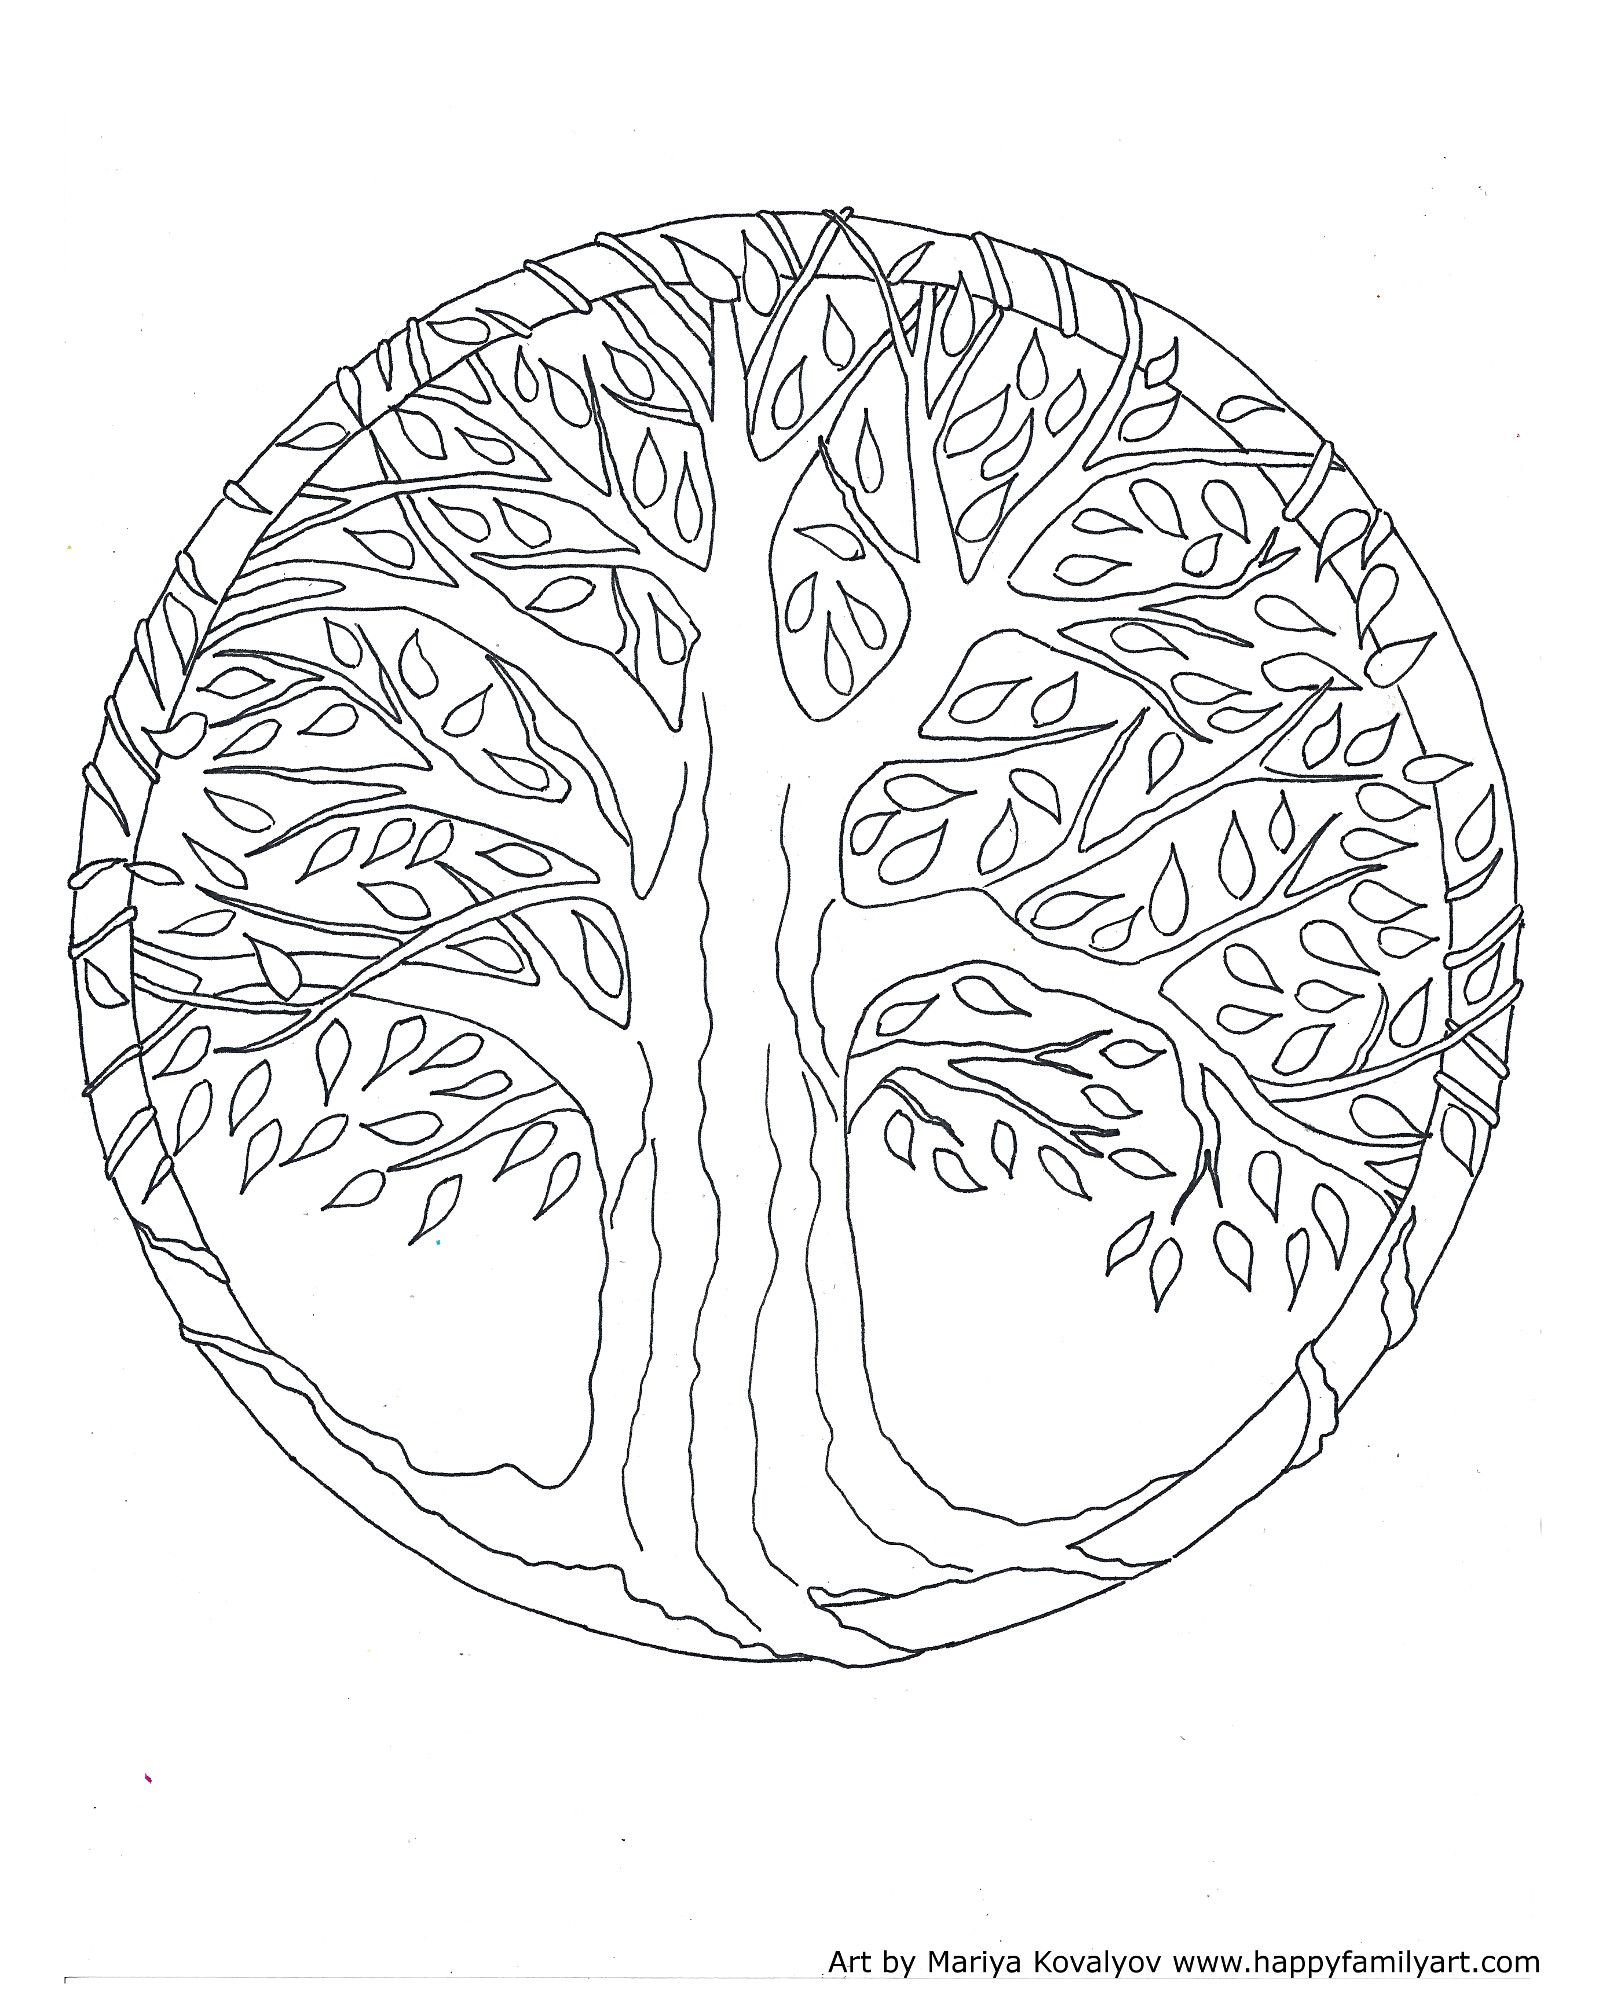 Coloring pages | Coloring pages ...